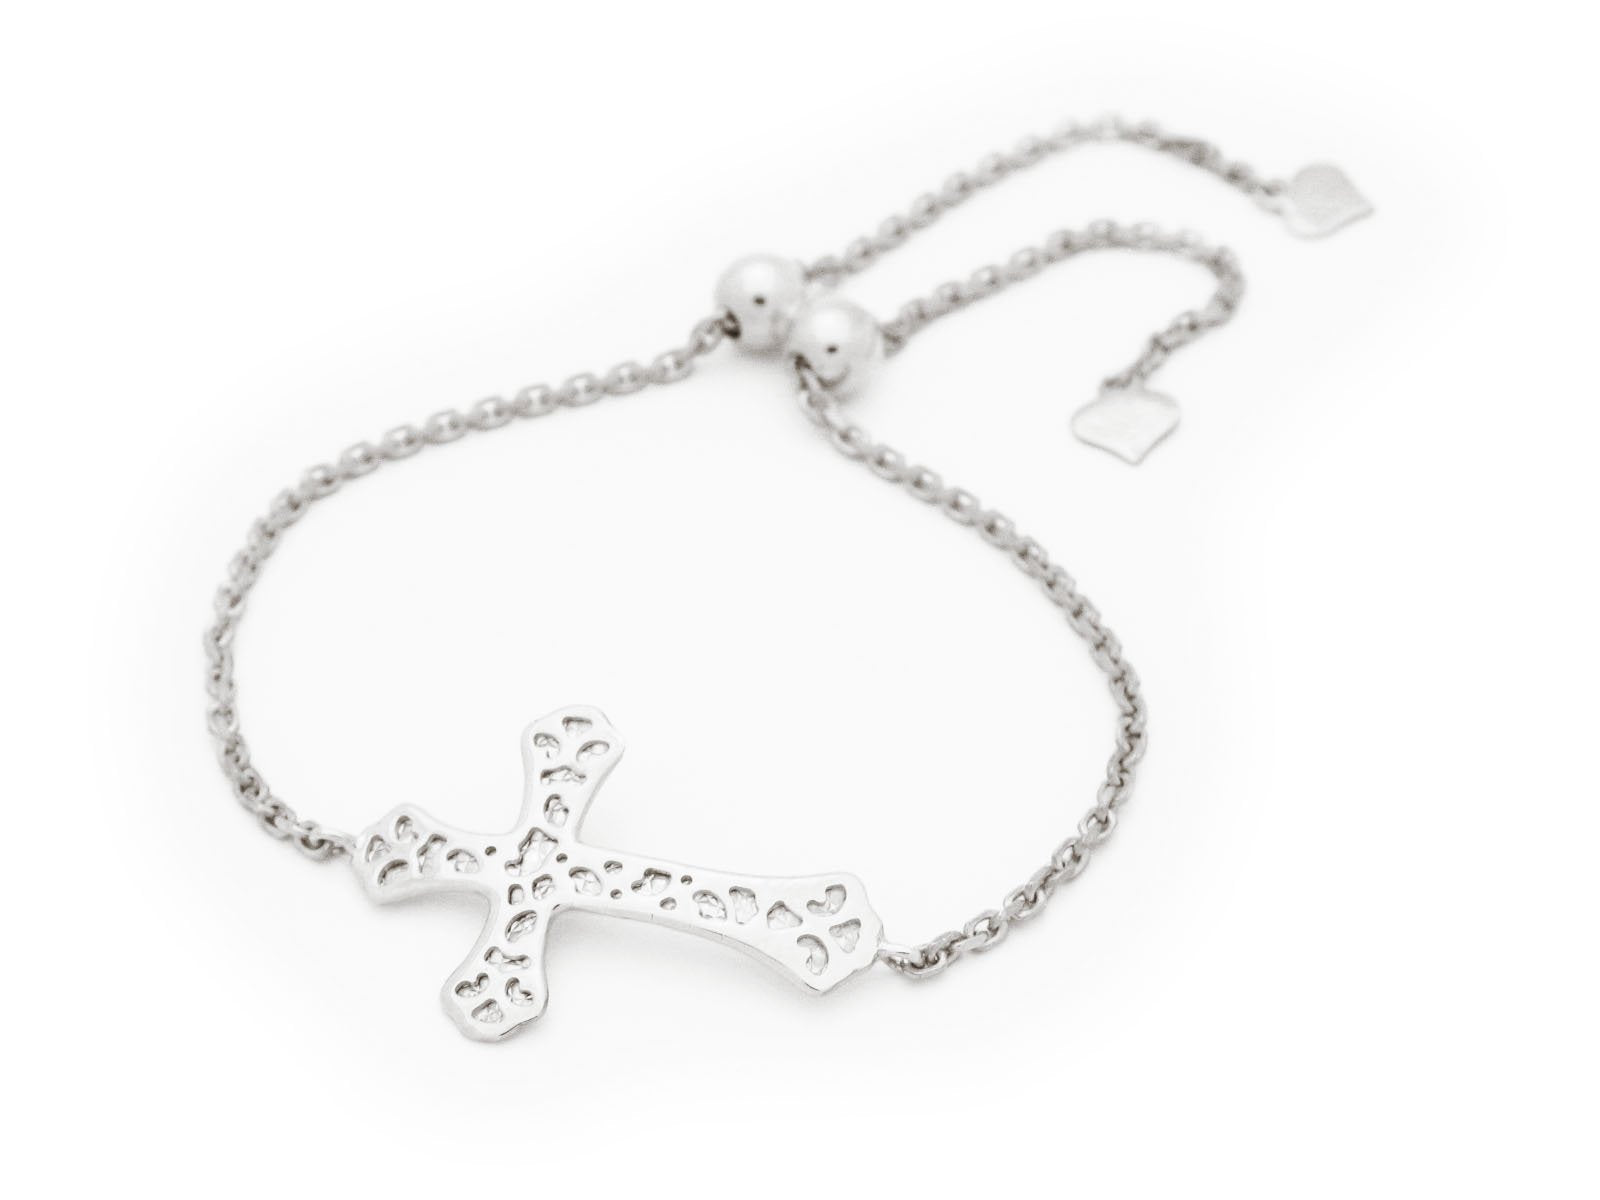 Beckids Adjustable Cross Bracelet